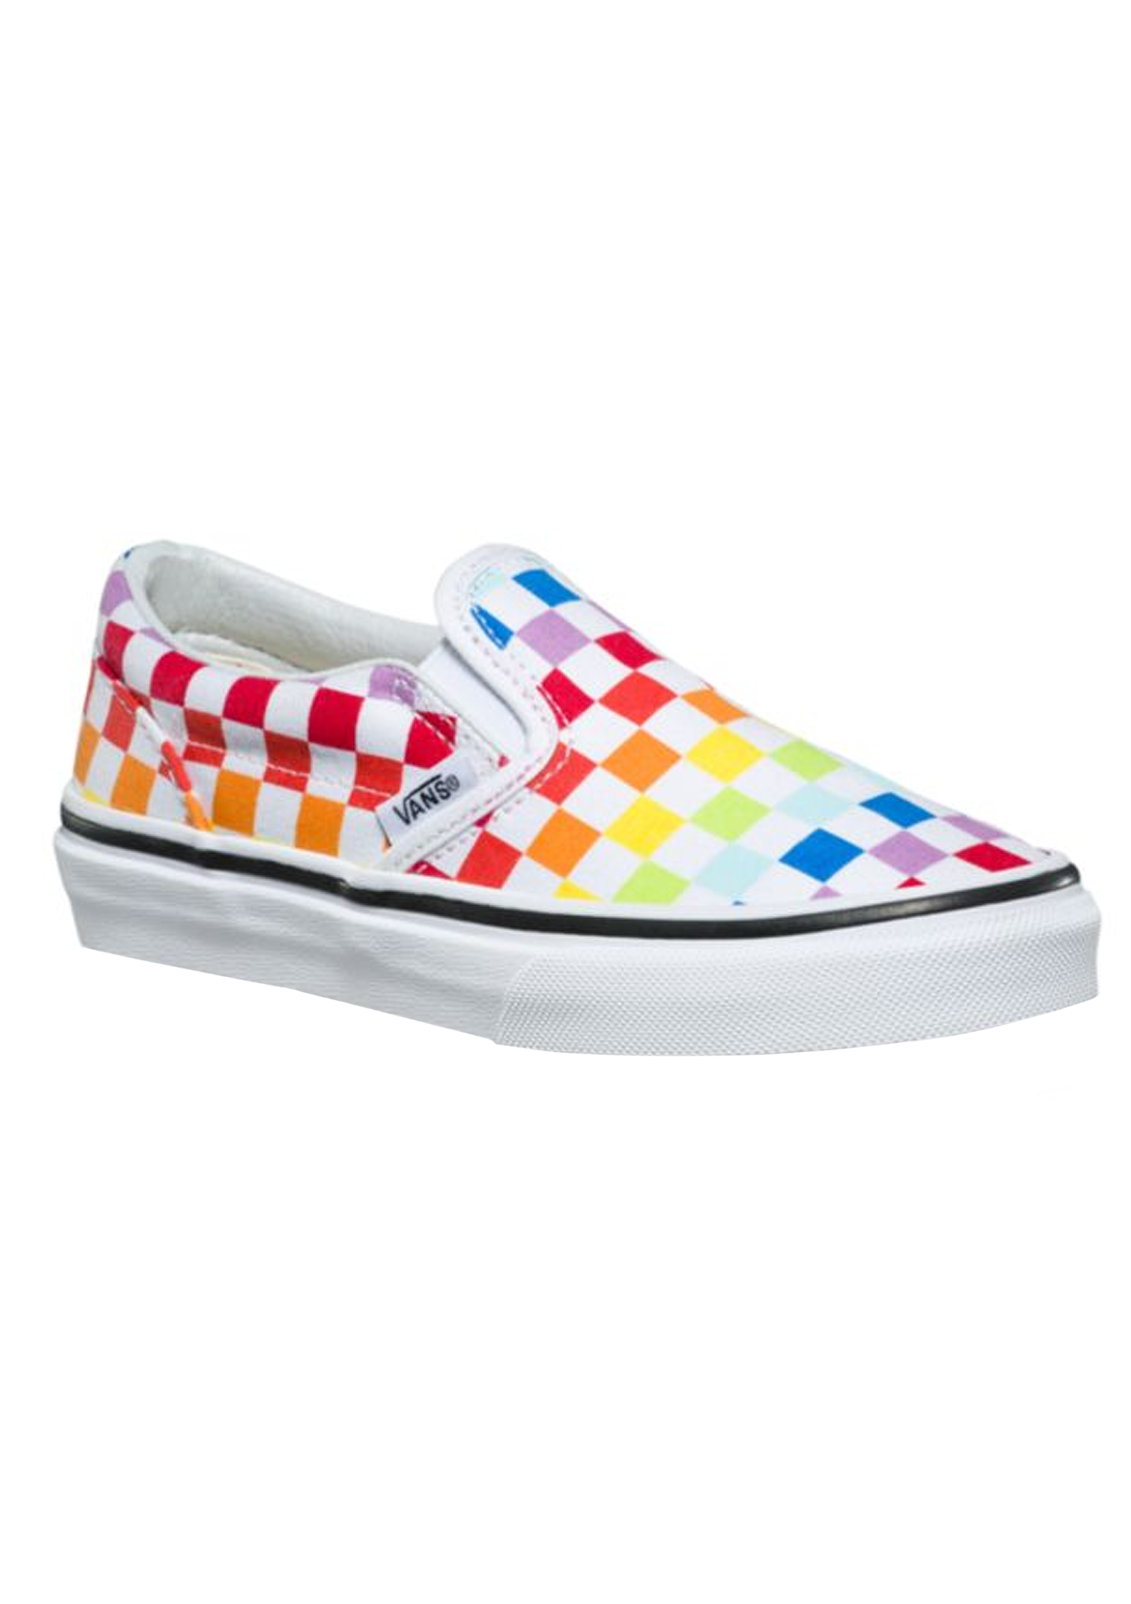 Kids Girls Checkerboard Slip-On